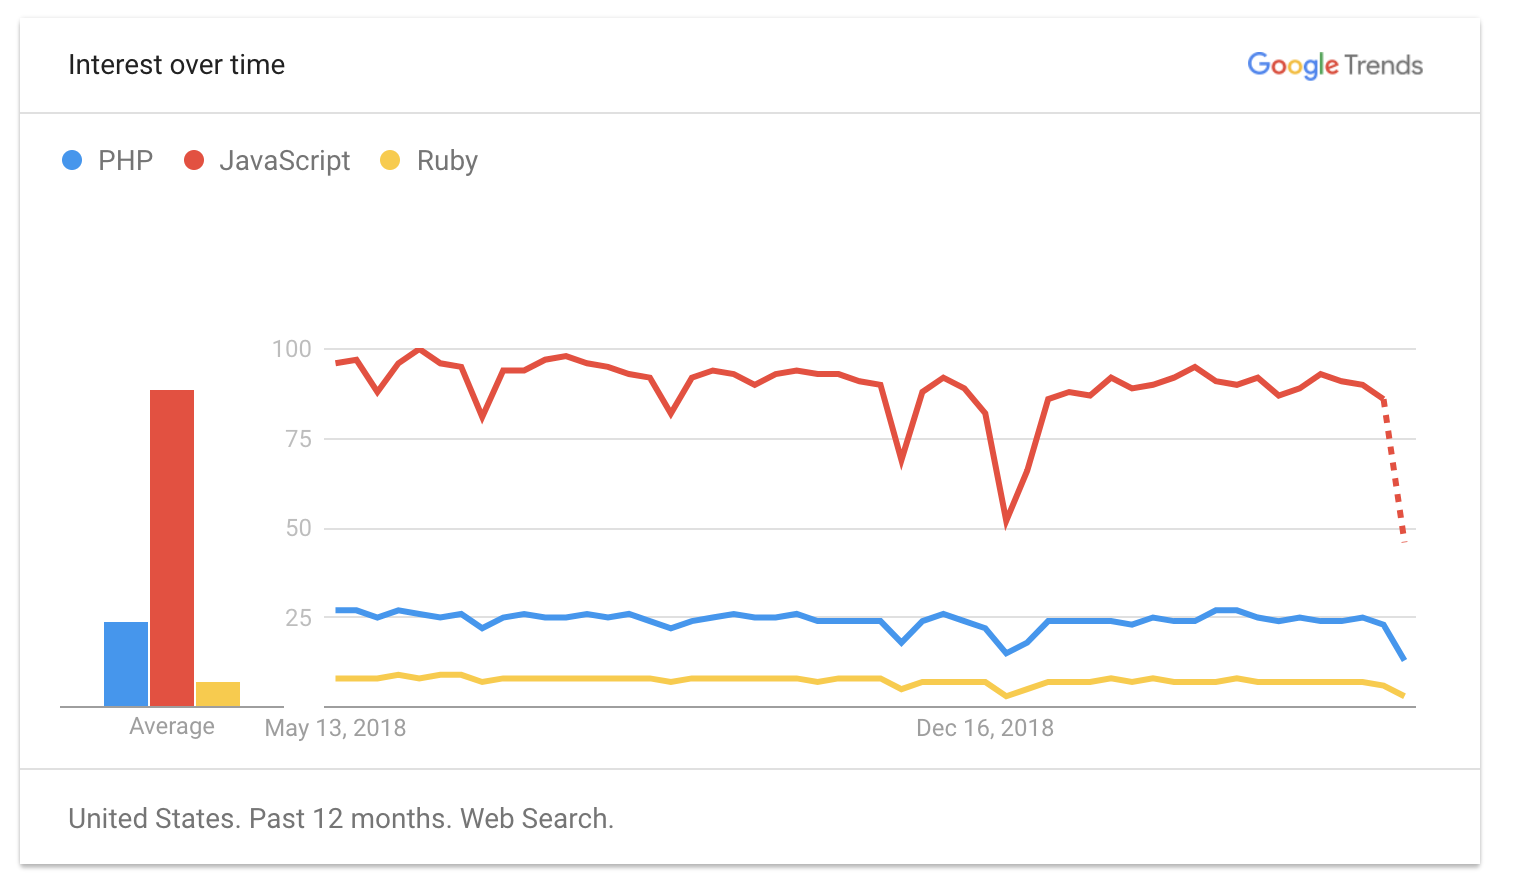 Google Trends: PHP, JS, Ruby